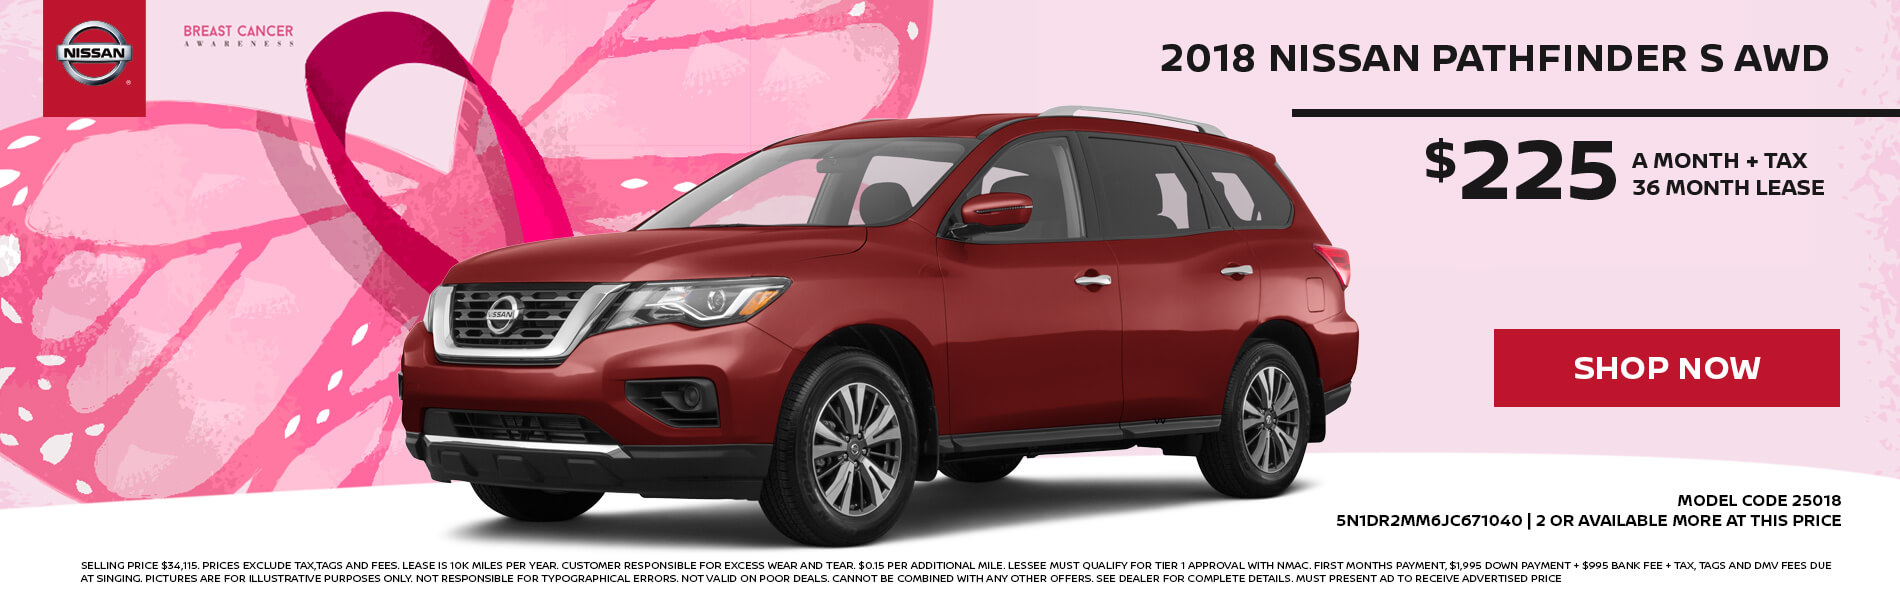 Exceptional Nissan Pathfinder $225 Lease